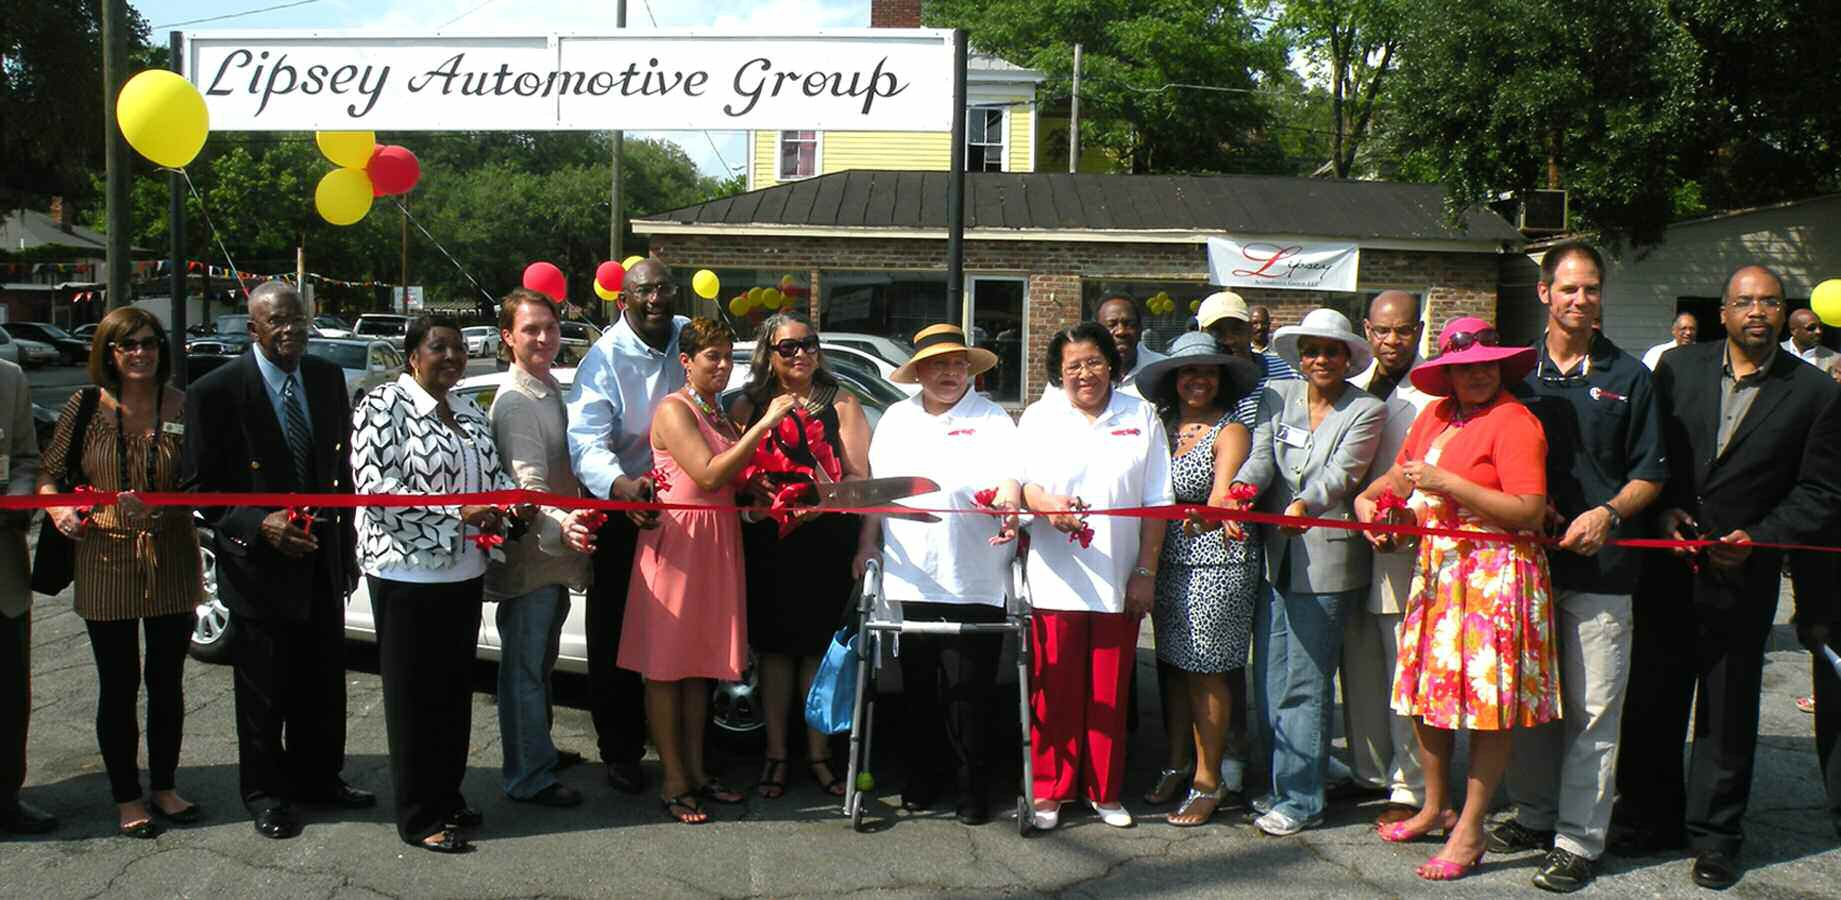 Proprietors of Lipsey Automotive, City officials, and community leaders were on hand for the ribbon cutting on Lipsey Automotive Group